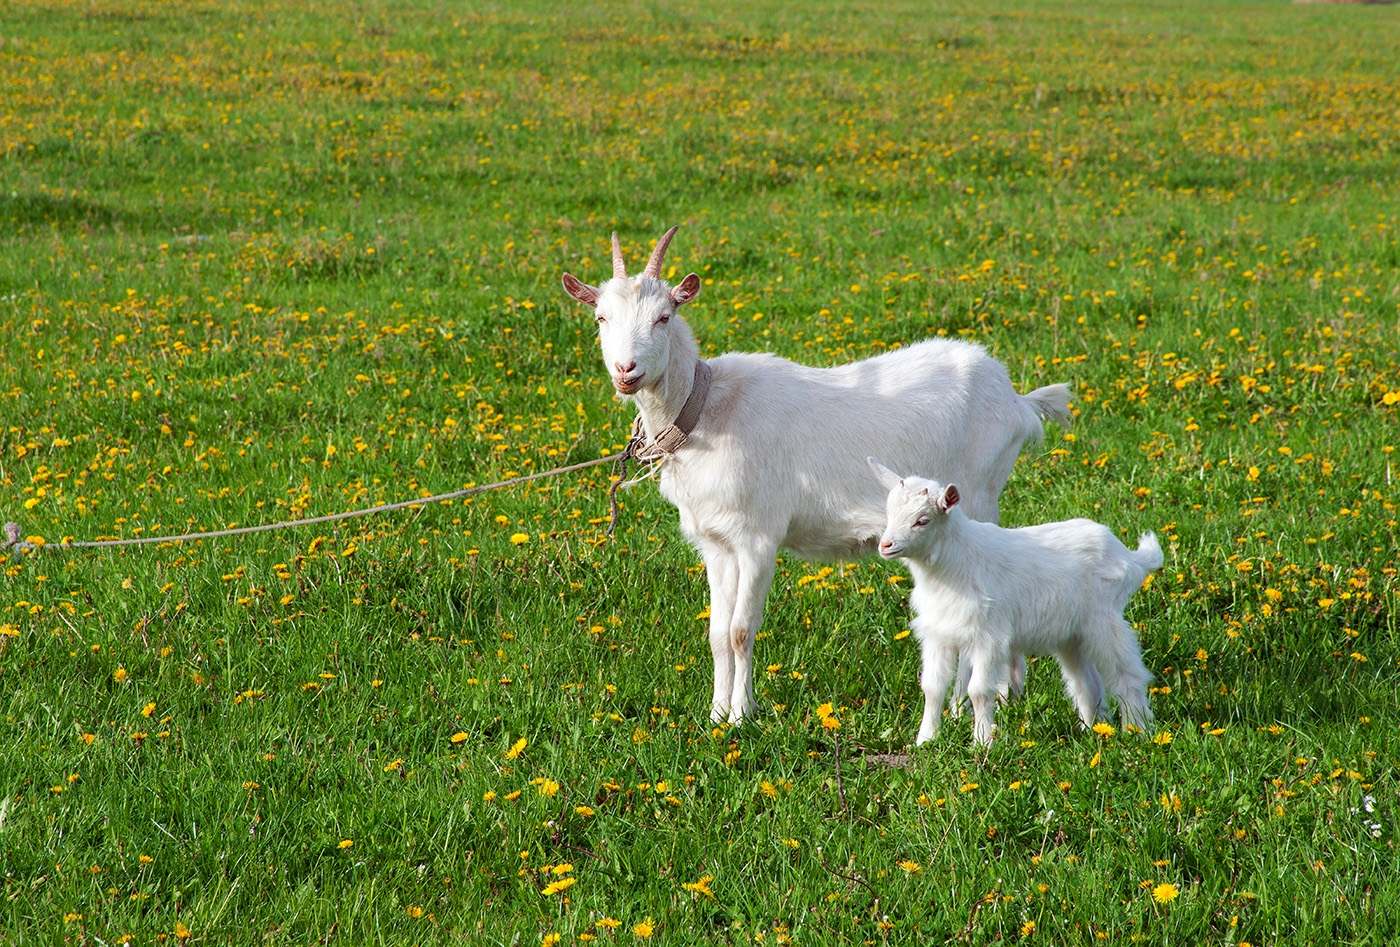 Two goats on the grass backyard 50793